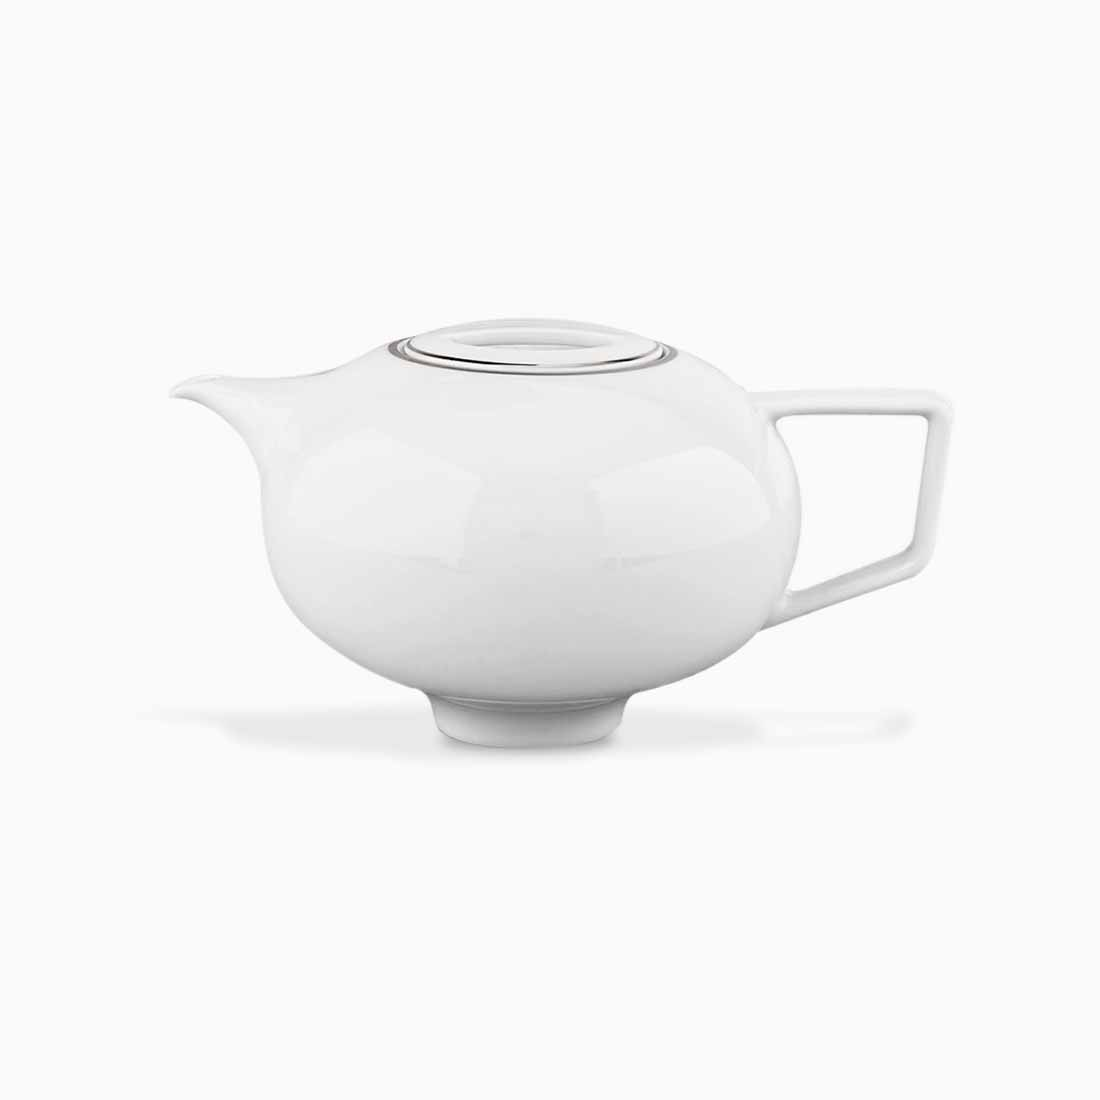 Pomona Teapot White with platinum line by Bodo Sperlein